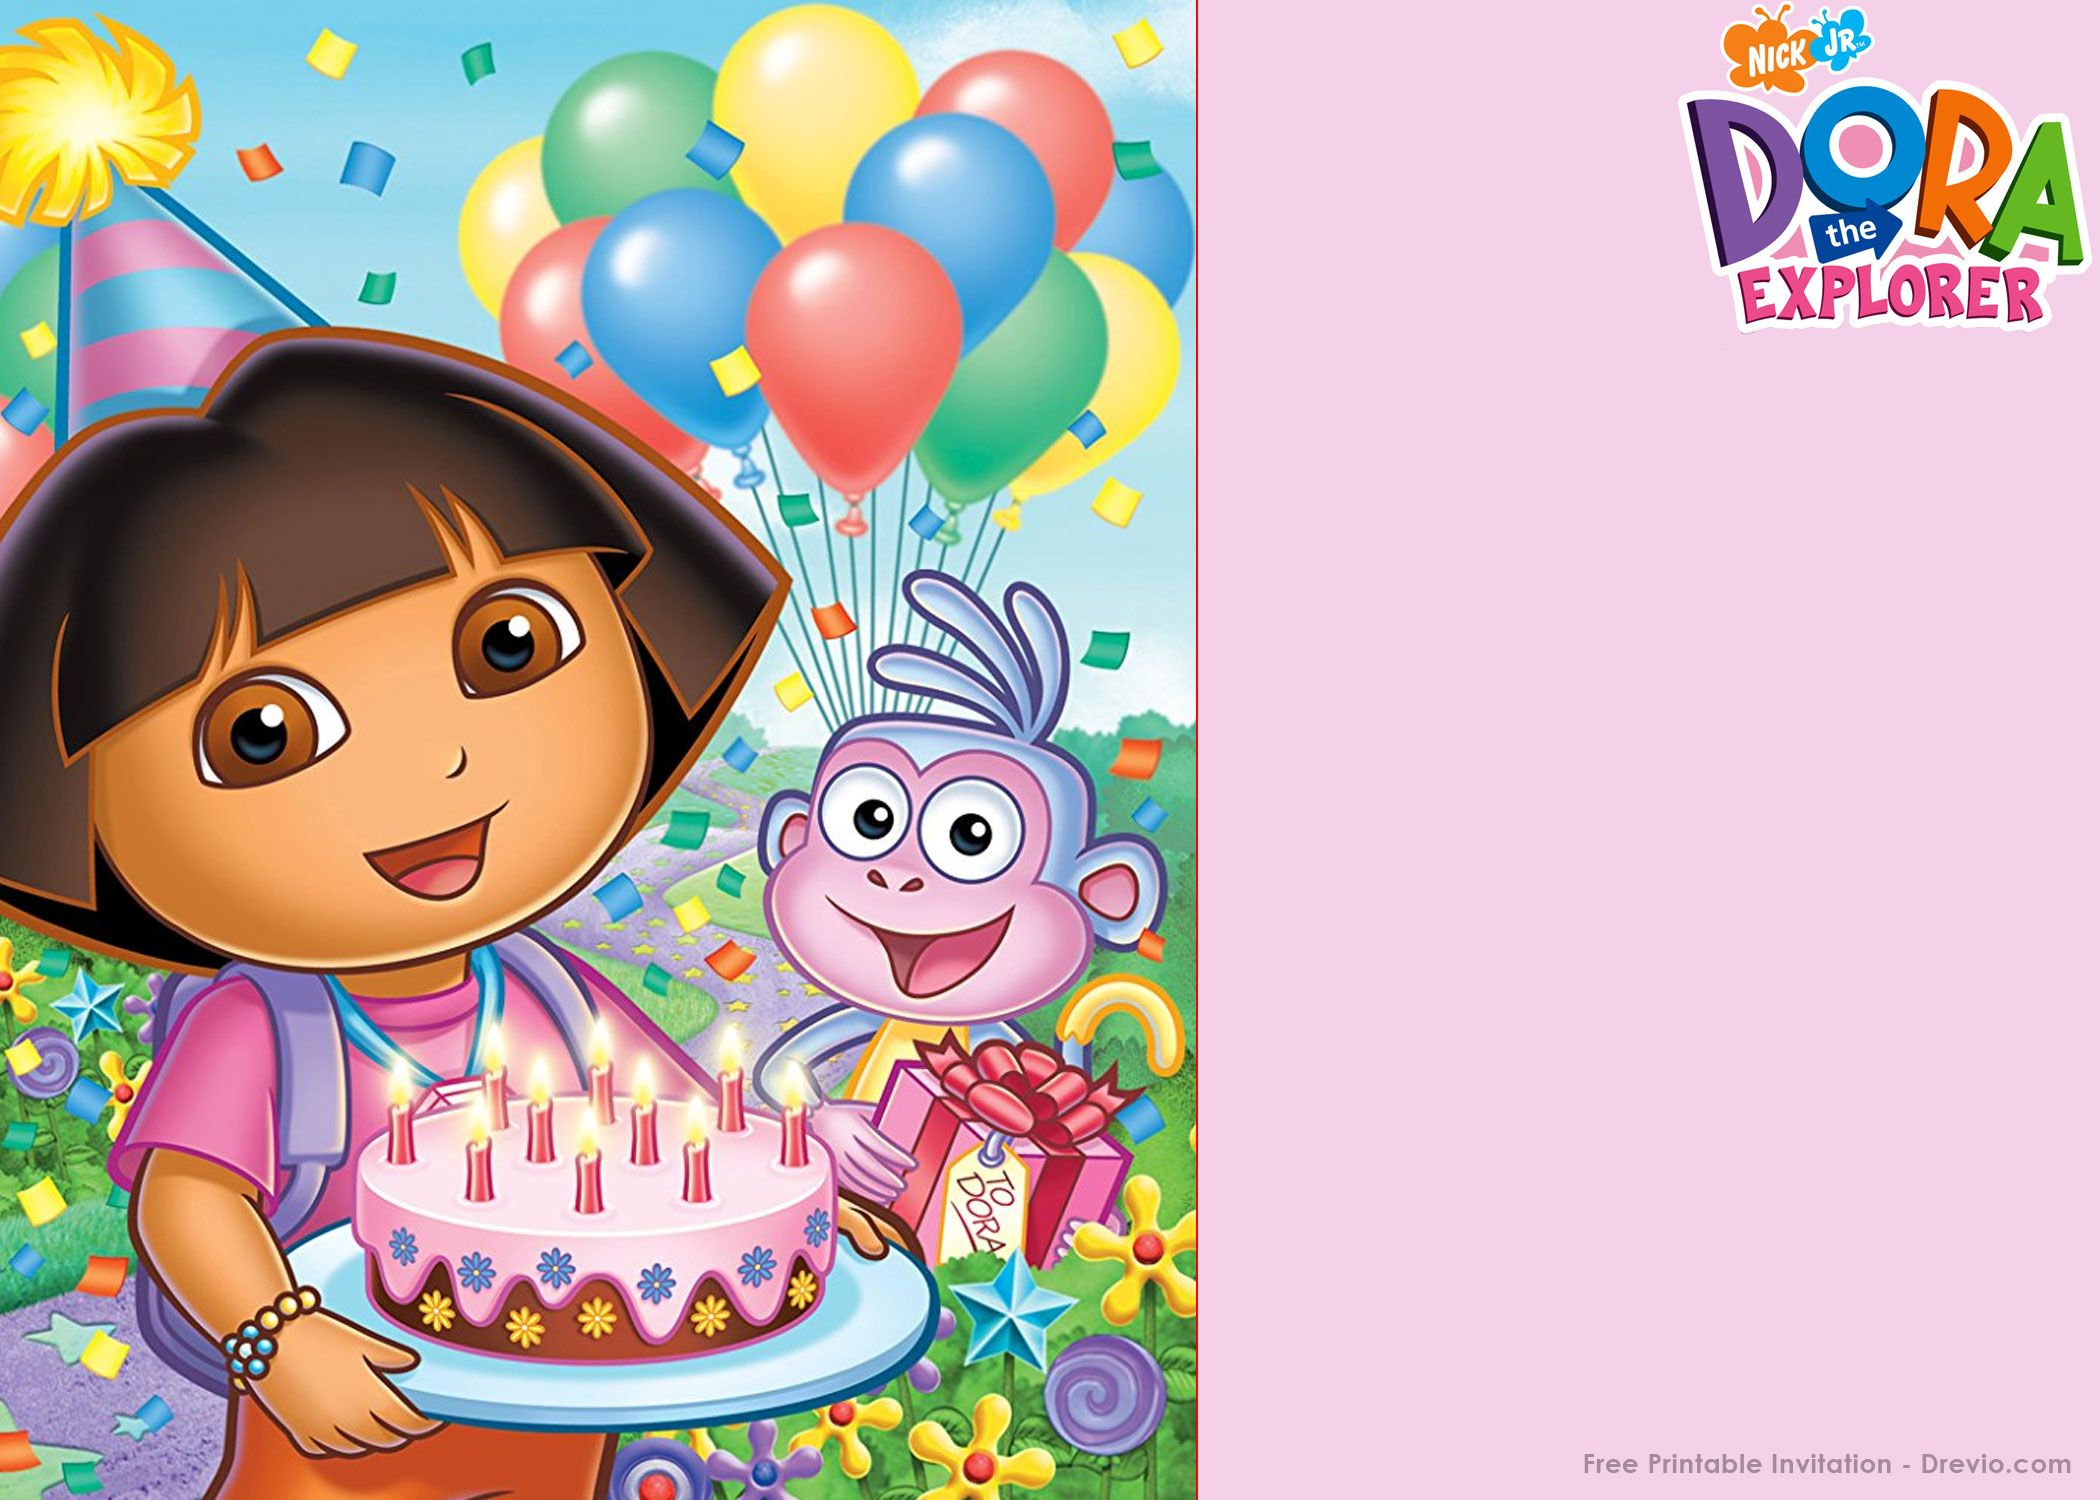 FREE Printable Dora The Explorer Party Invitation